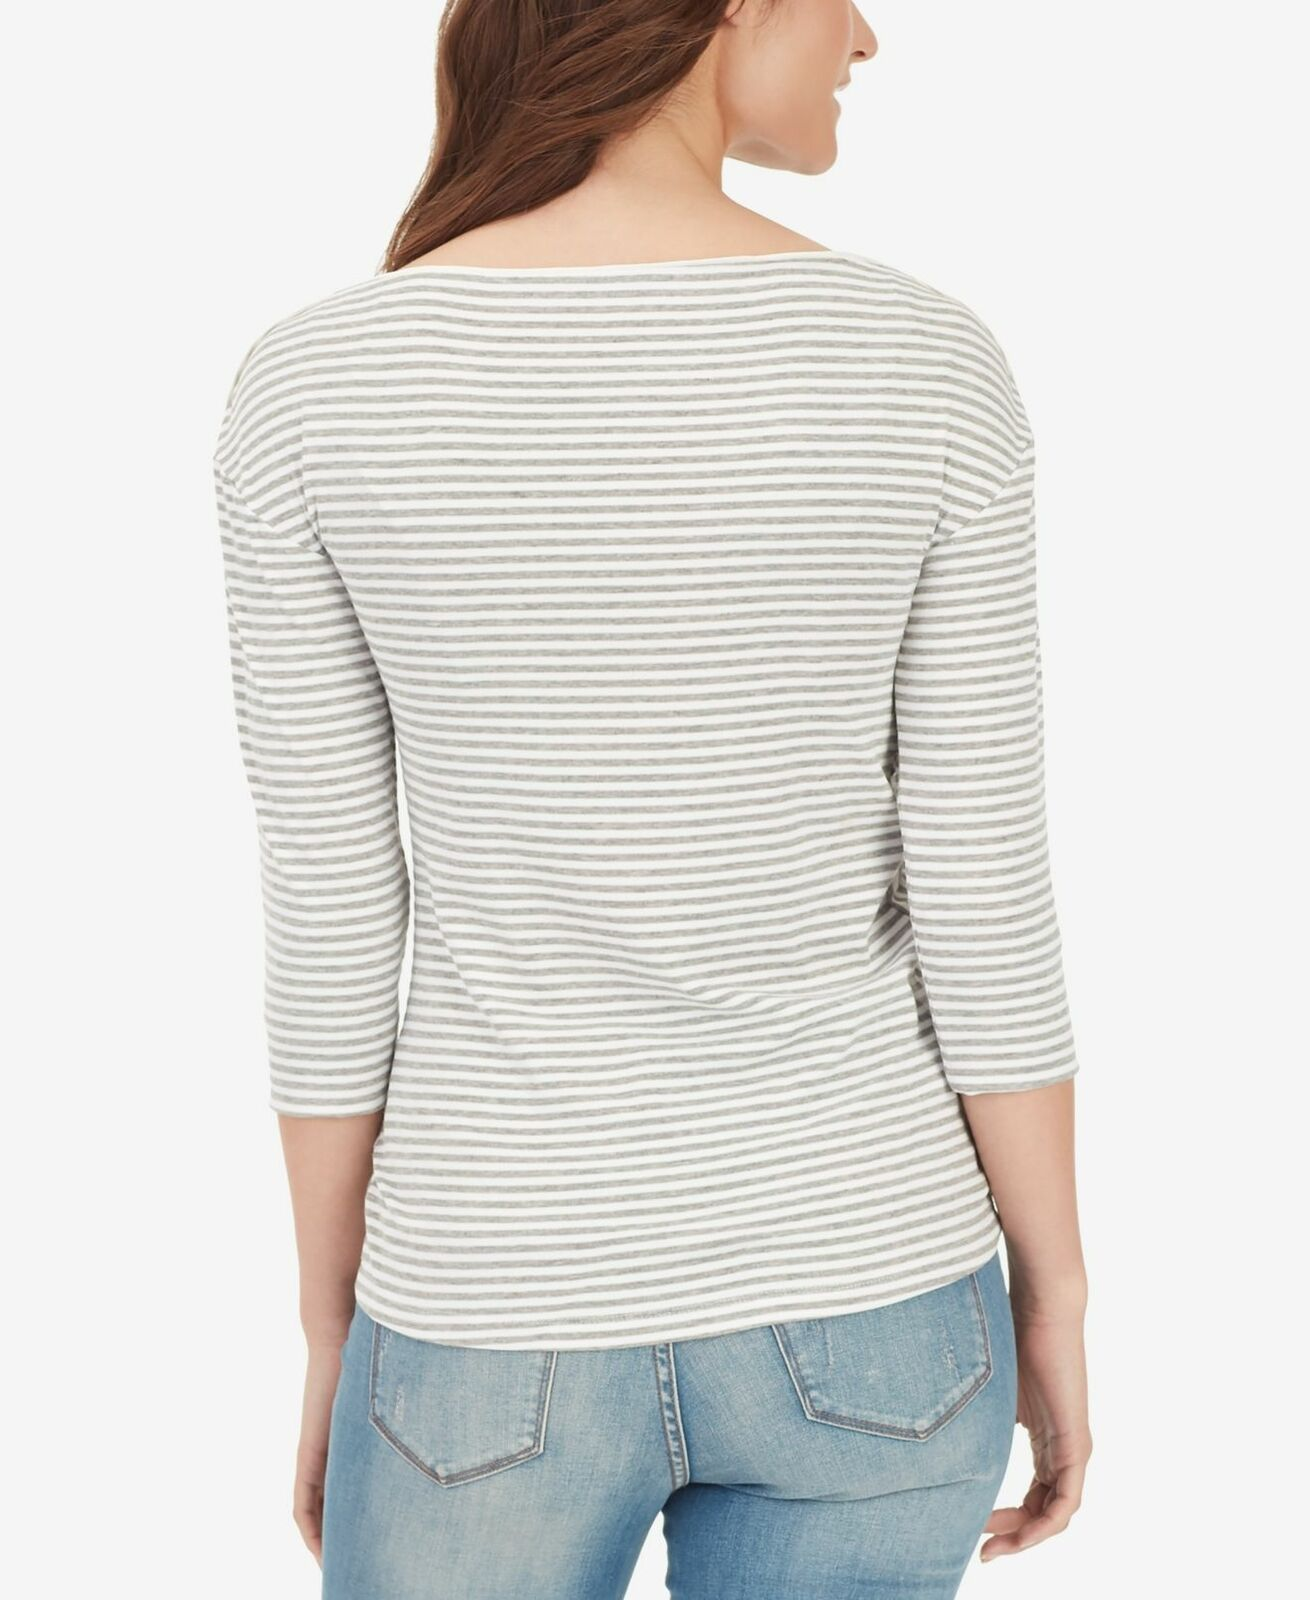 William-Rast-Women-039-s-Gray-Size-XS-Striped-Ribbed-Knit-Cinched-Blouse thumbnail 2